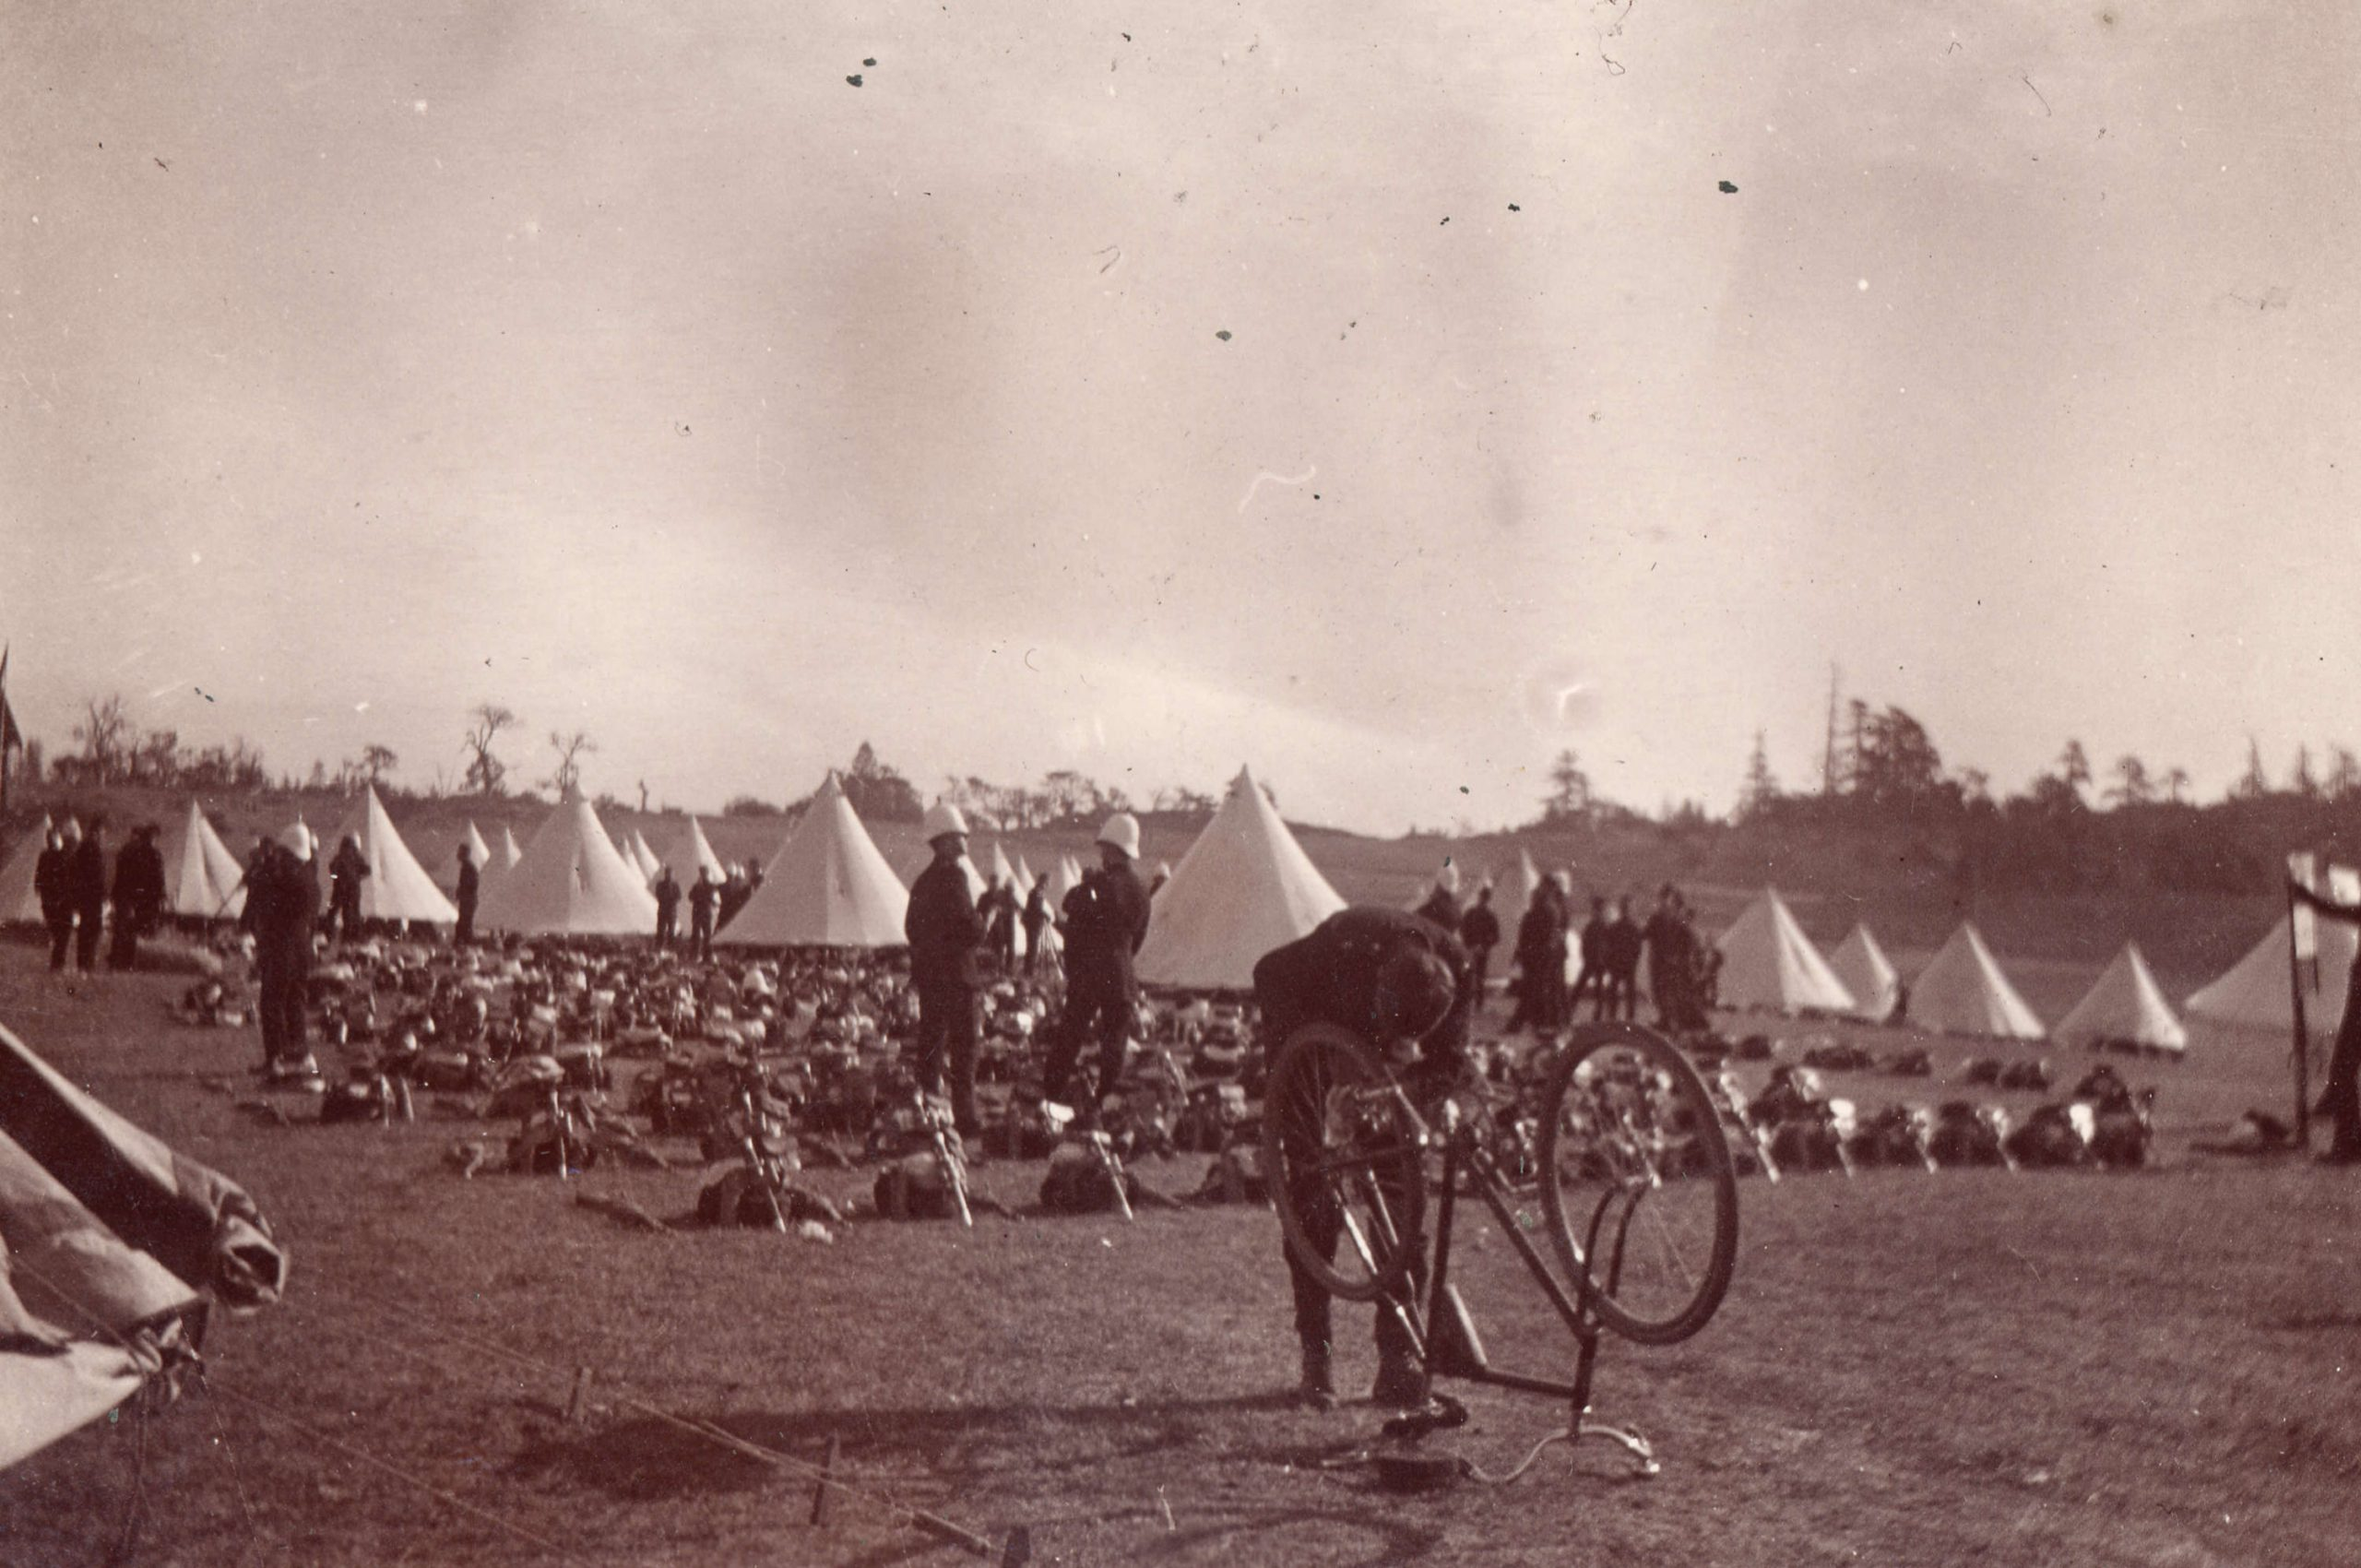 Soldier repairing bicycle. Reference code: AM54-S4-: Mil P135.3